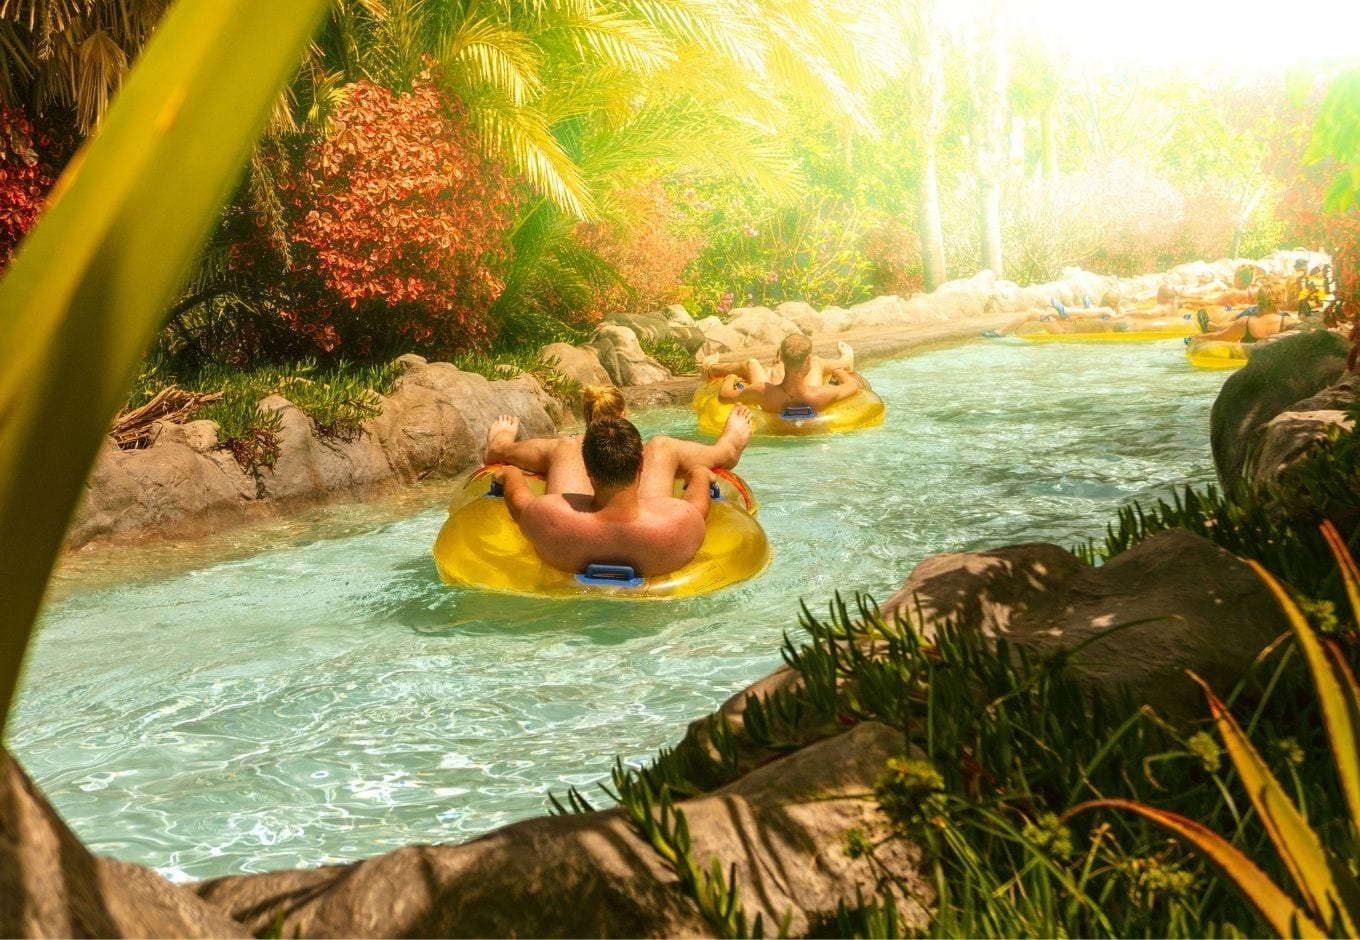 The 15 Best Water Parks in the World